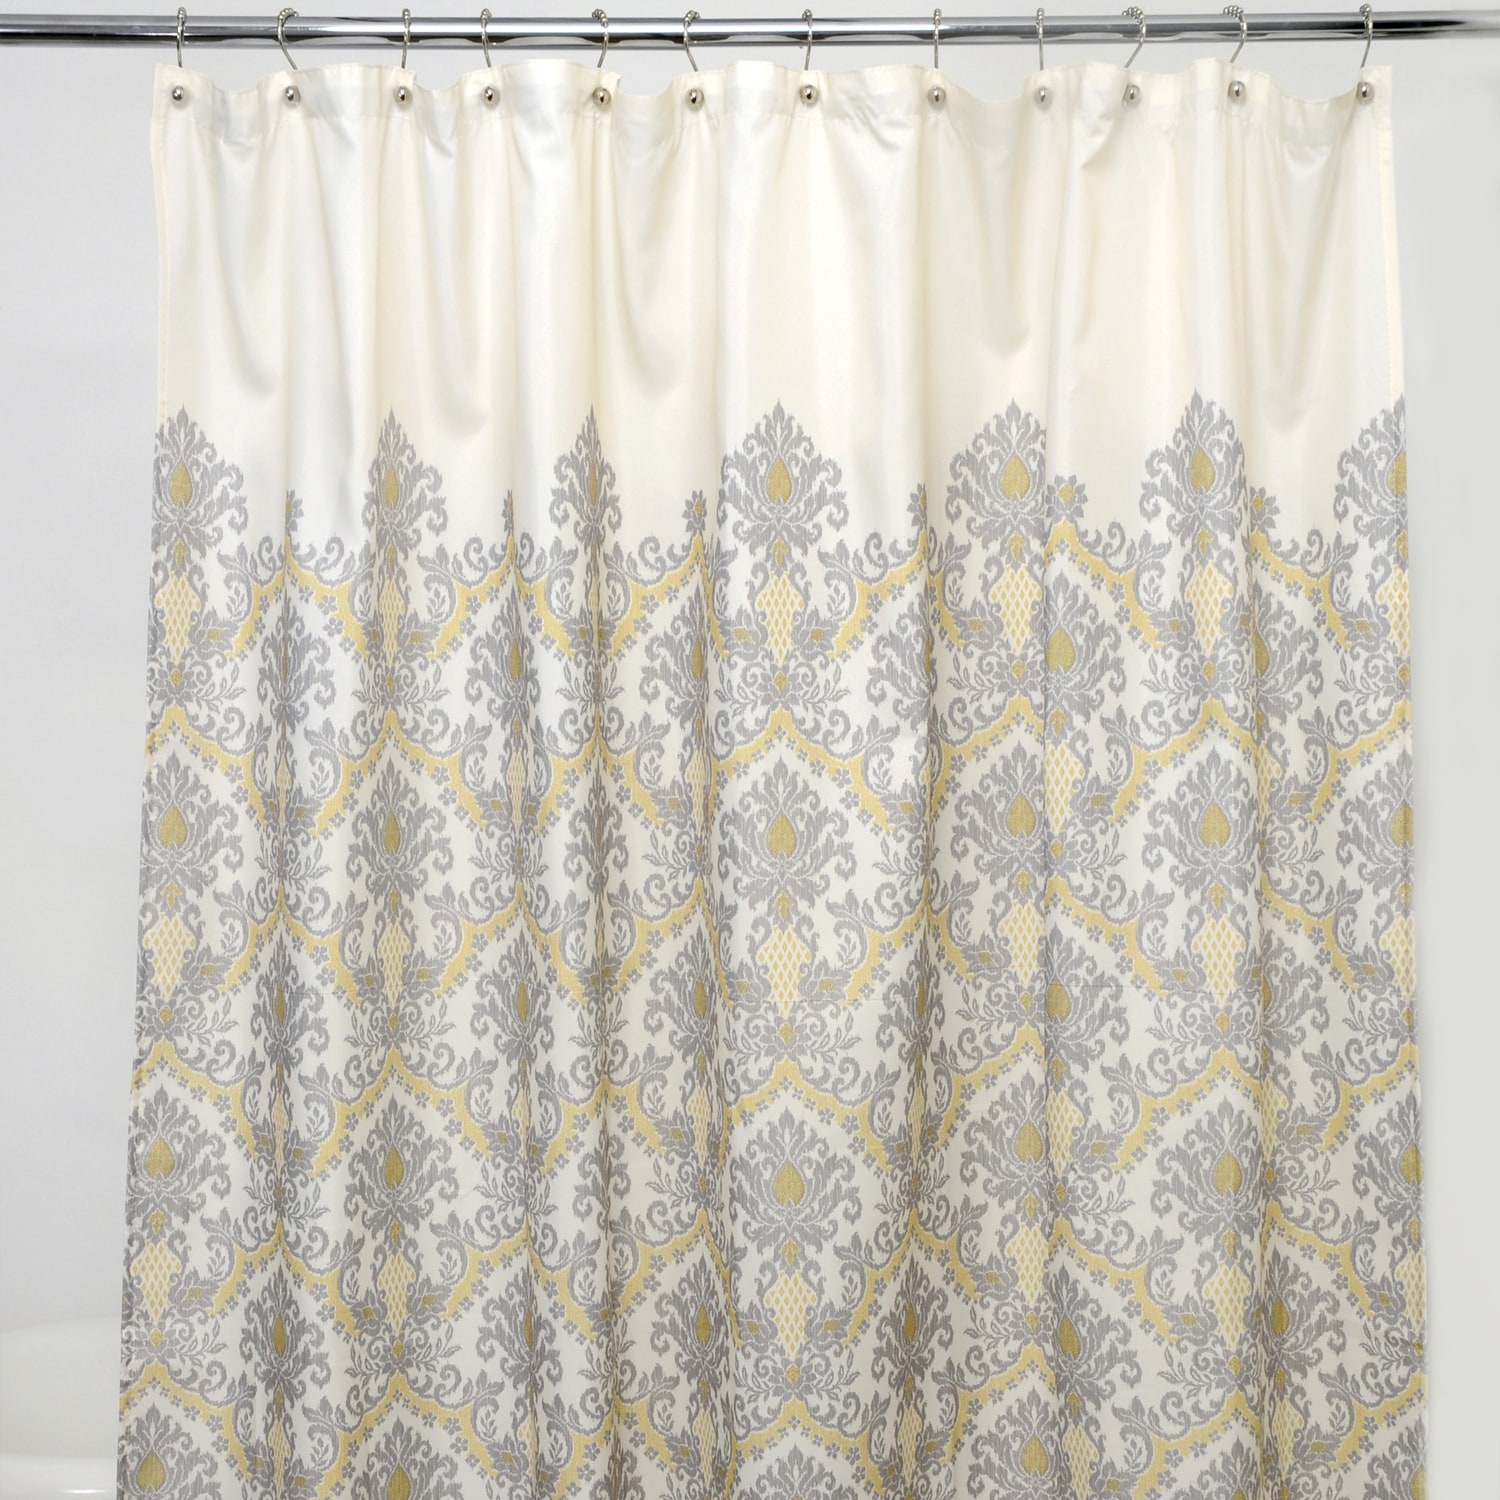 Shop Bedazzled Grey Damask 100 Percent Polyester Shower Curtain Overstock 6420324